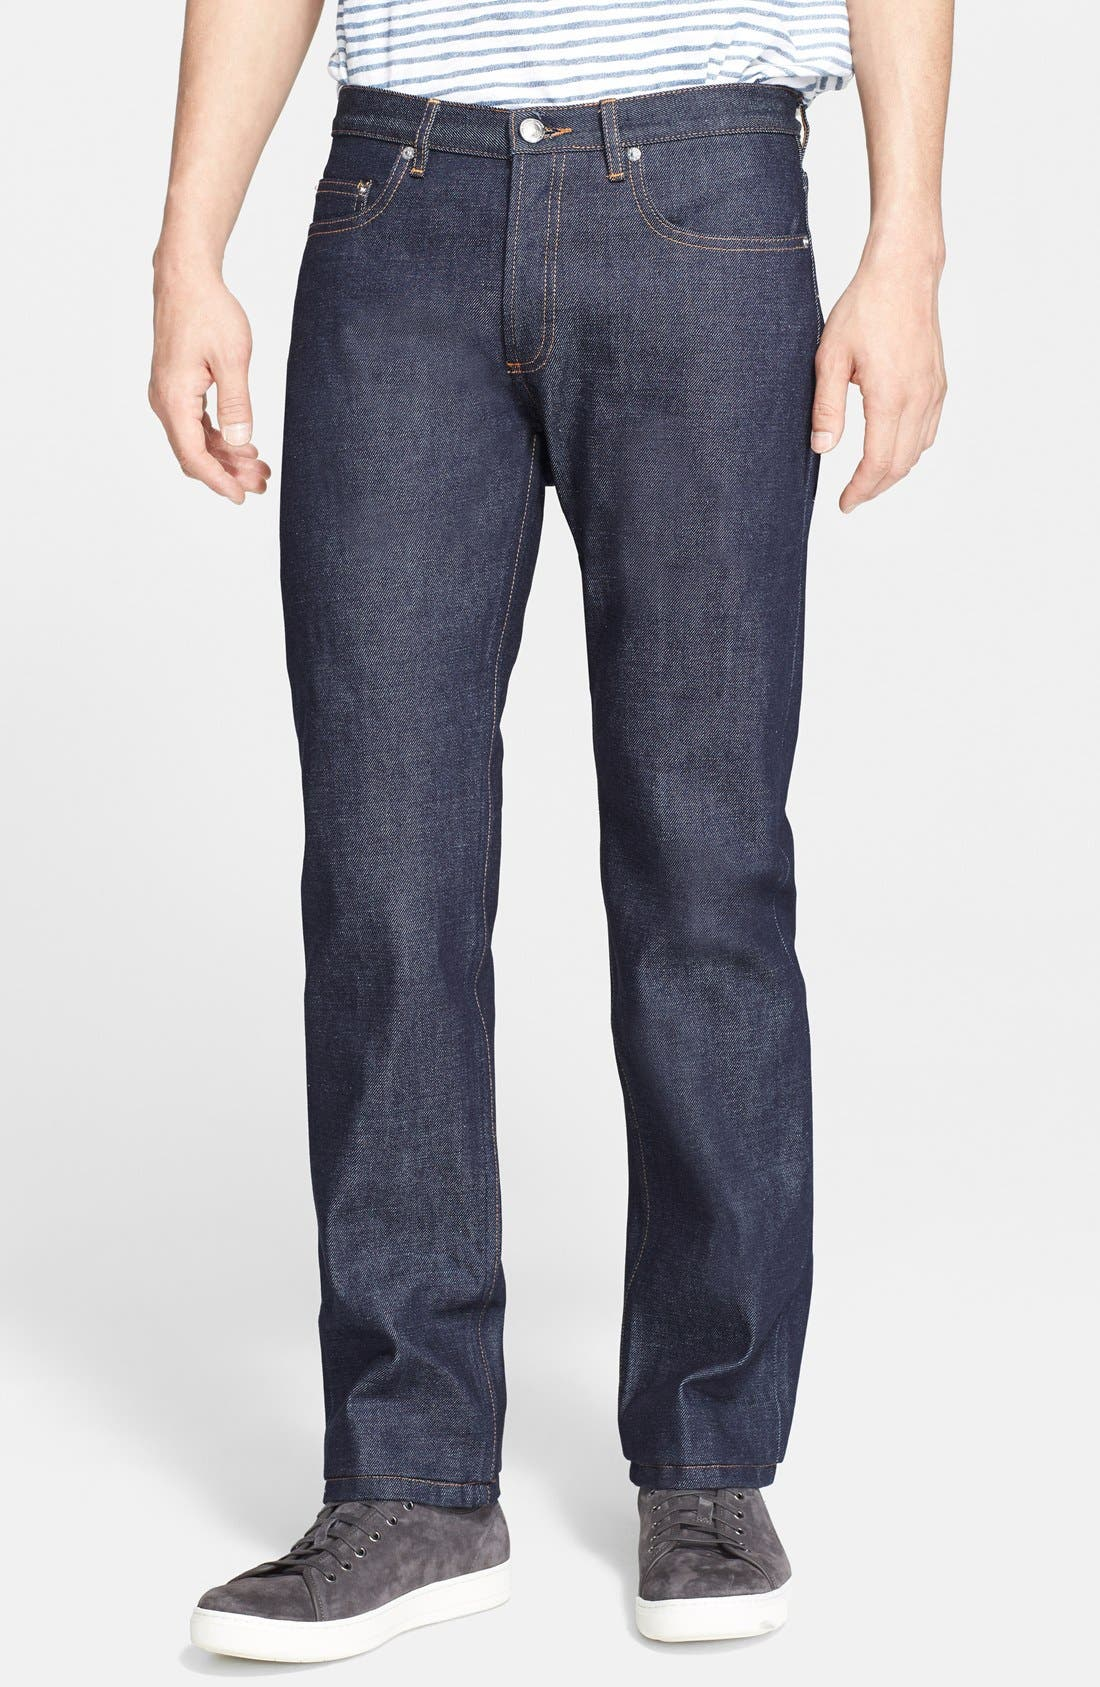 A.P.C. New Standard Slim Straight Leg Selvedge Jeans